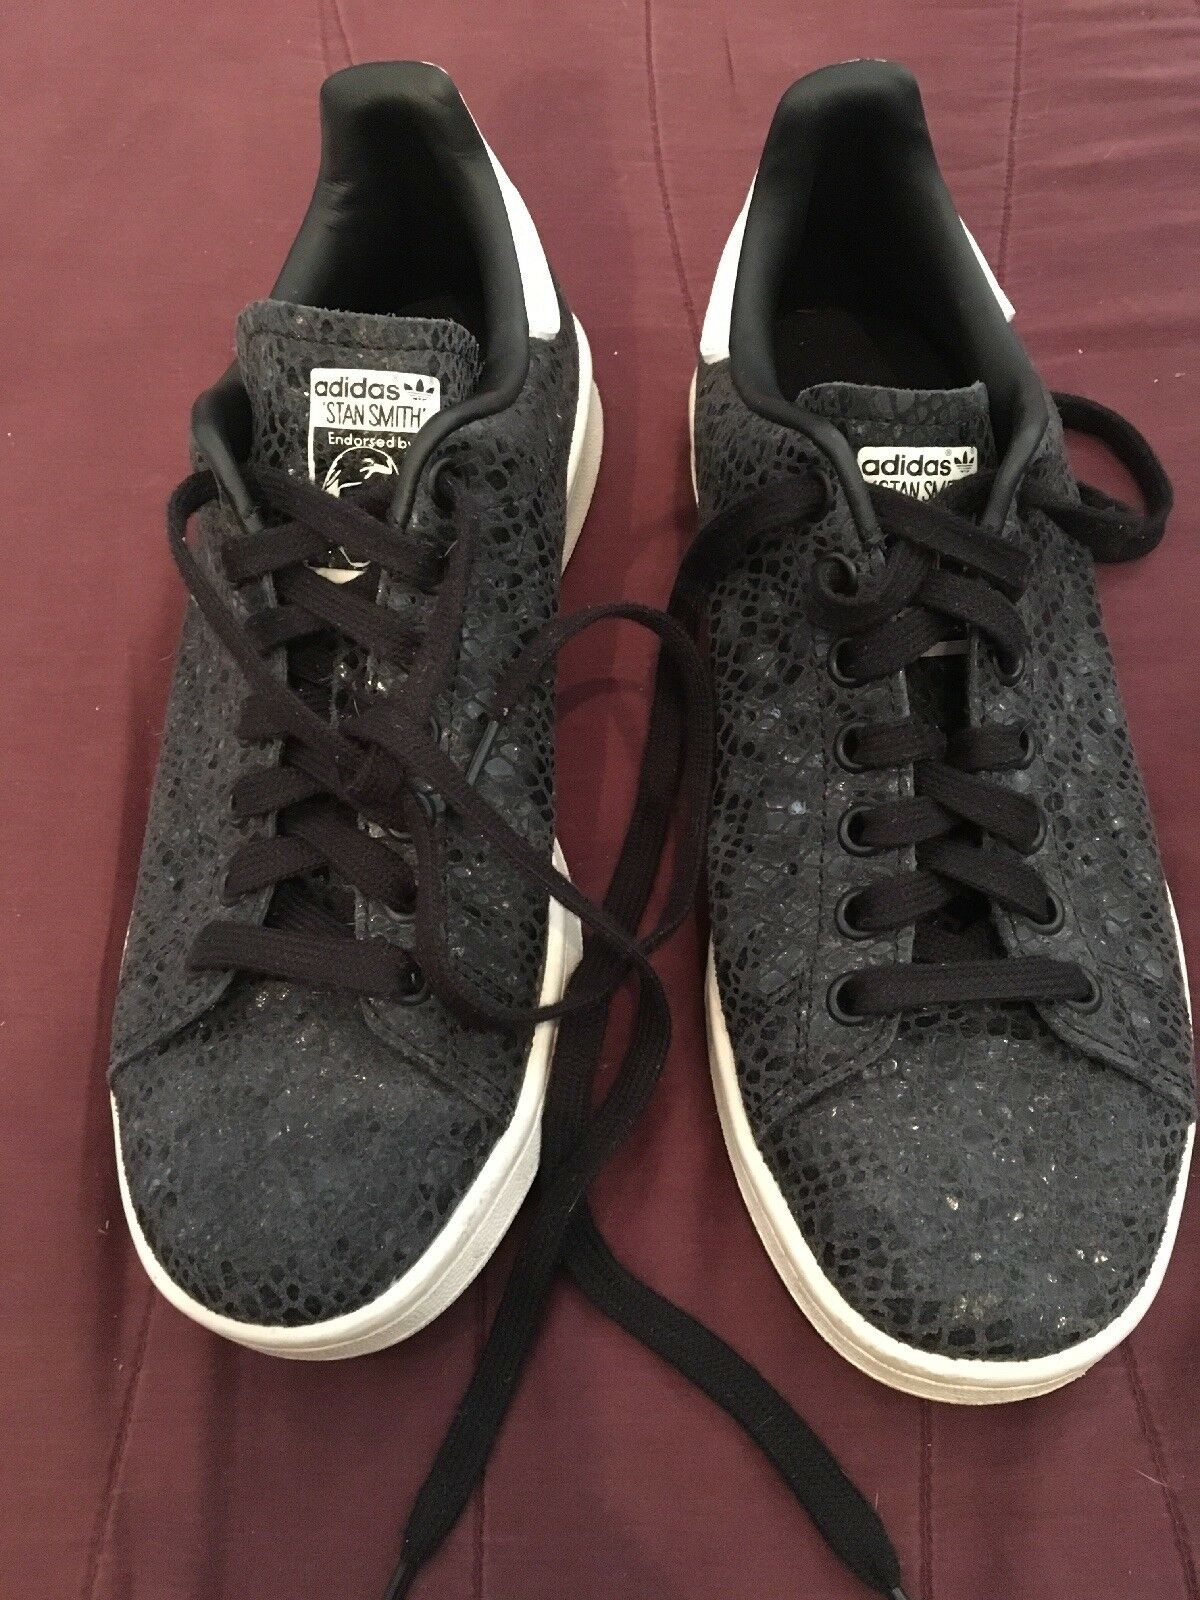 Adidas Stan Smith Womens shoes S77344 Black Snake Emb. Leather US 7.5.